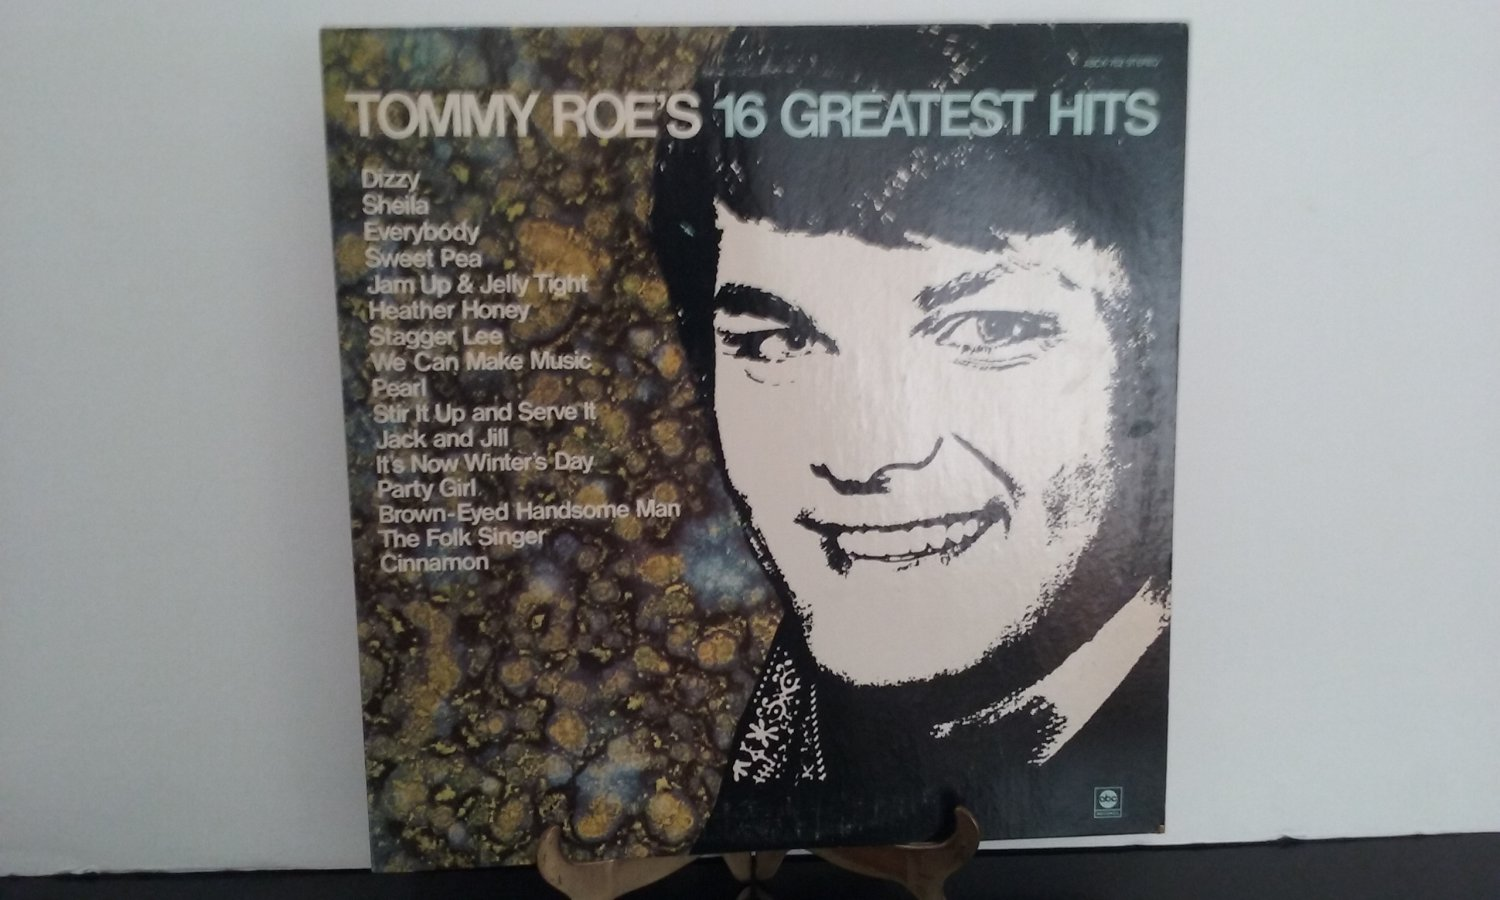 Tommy Roe - 16 Greatest Hits - Circa 1972